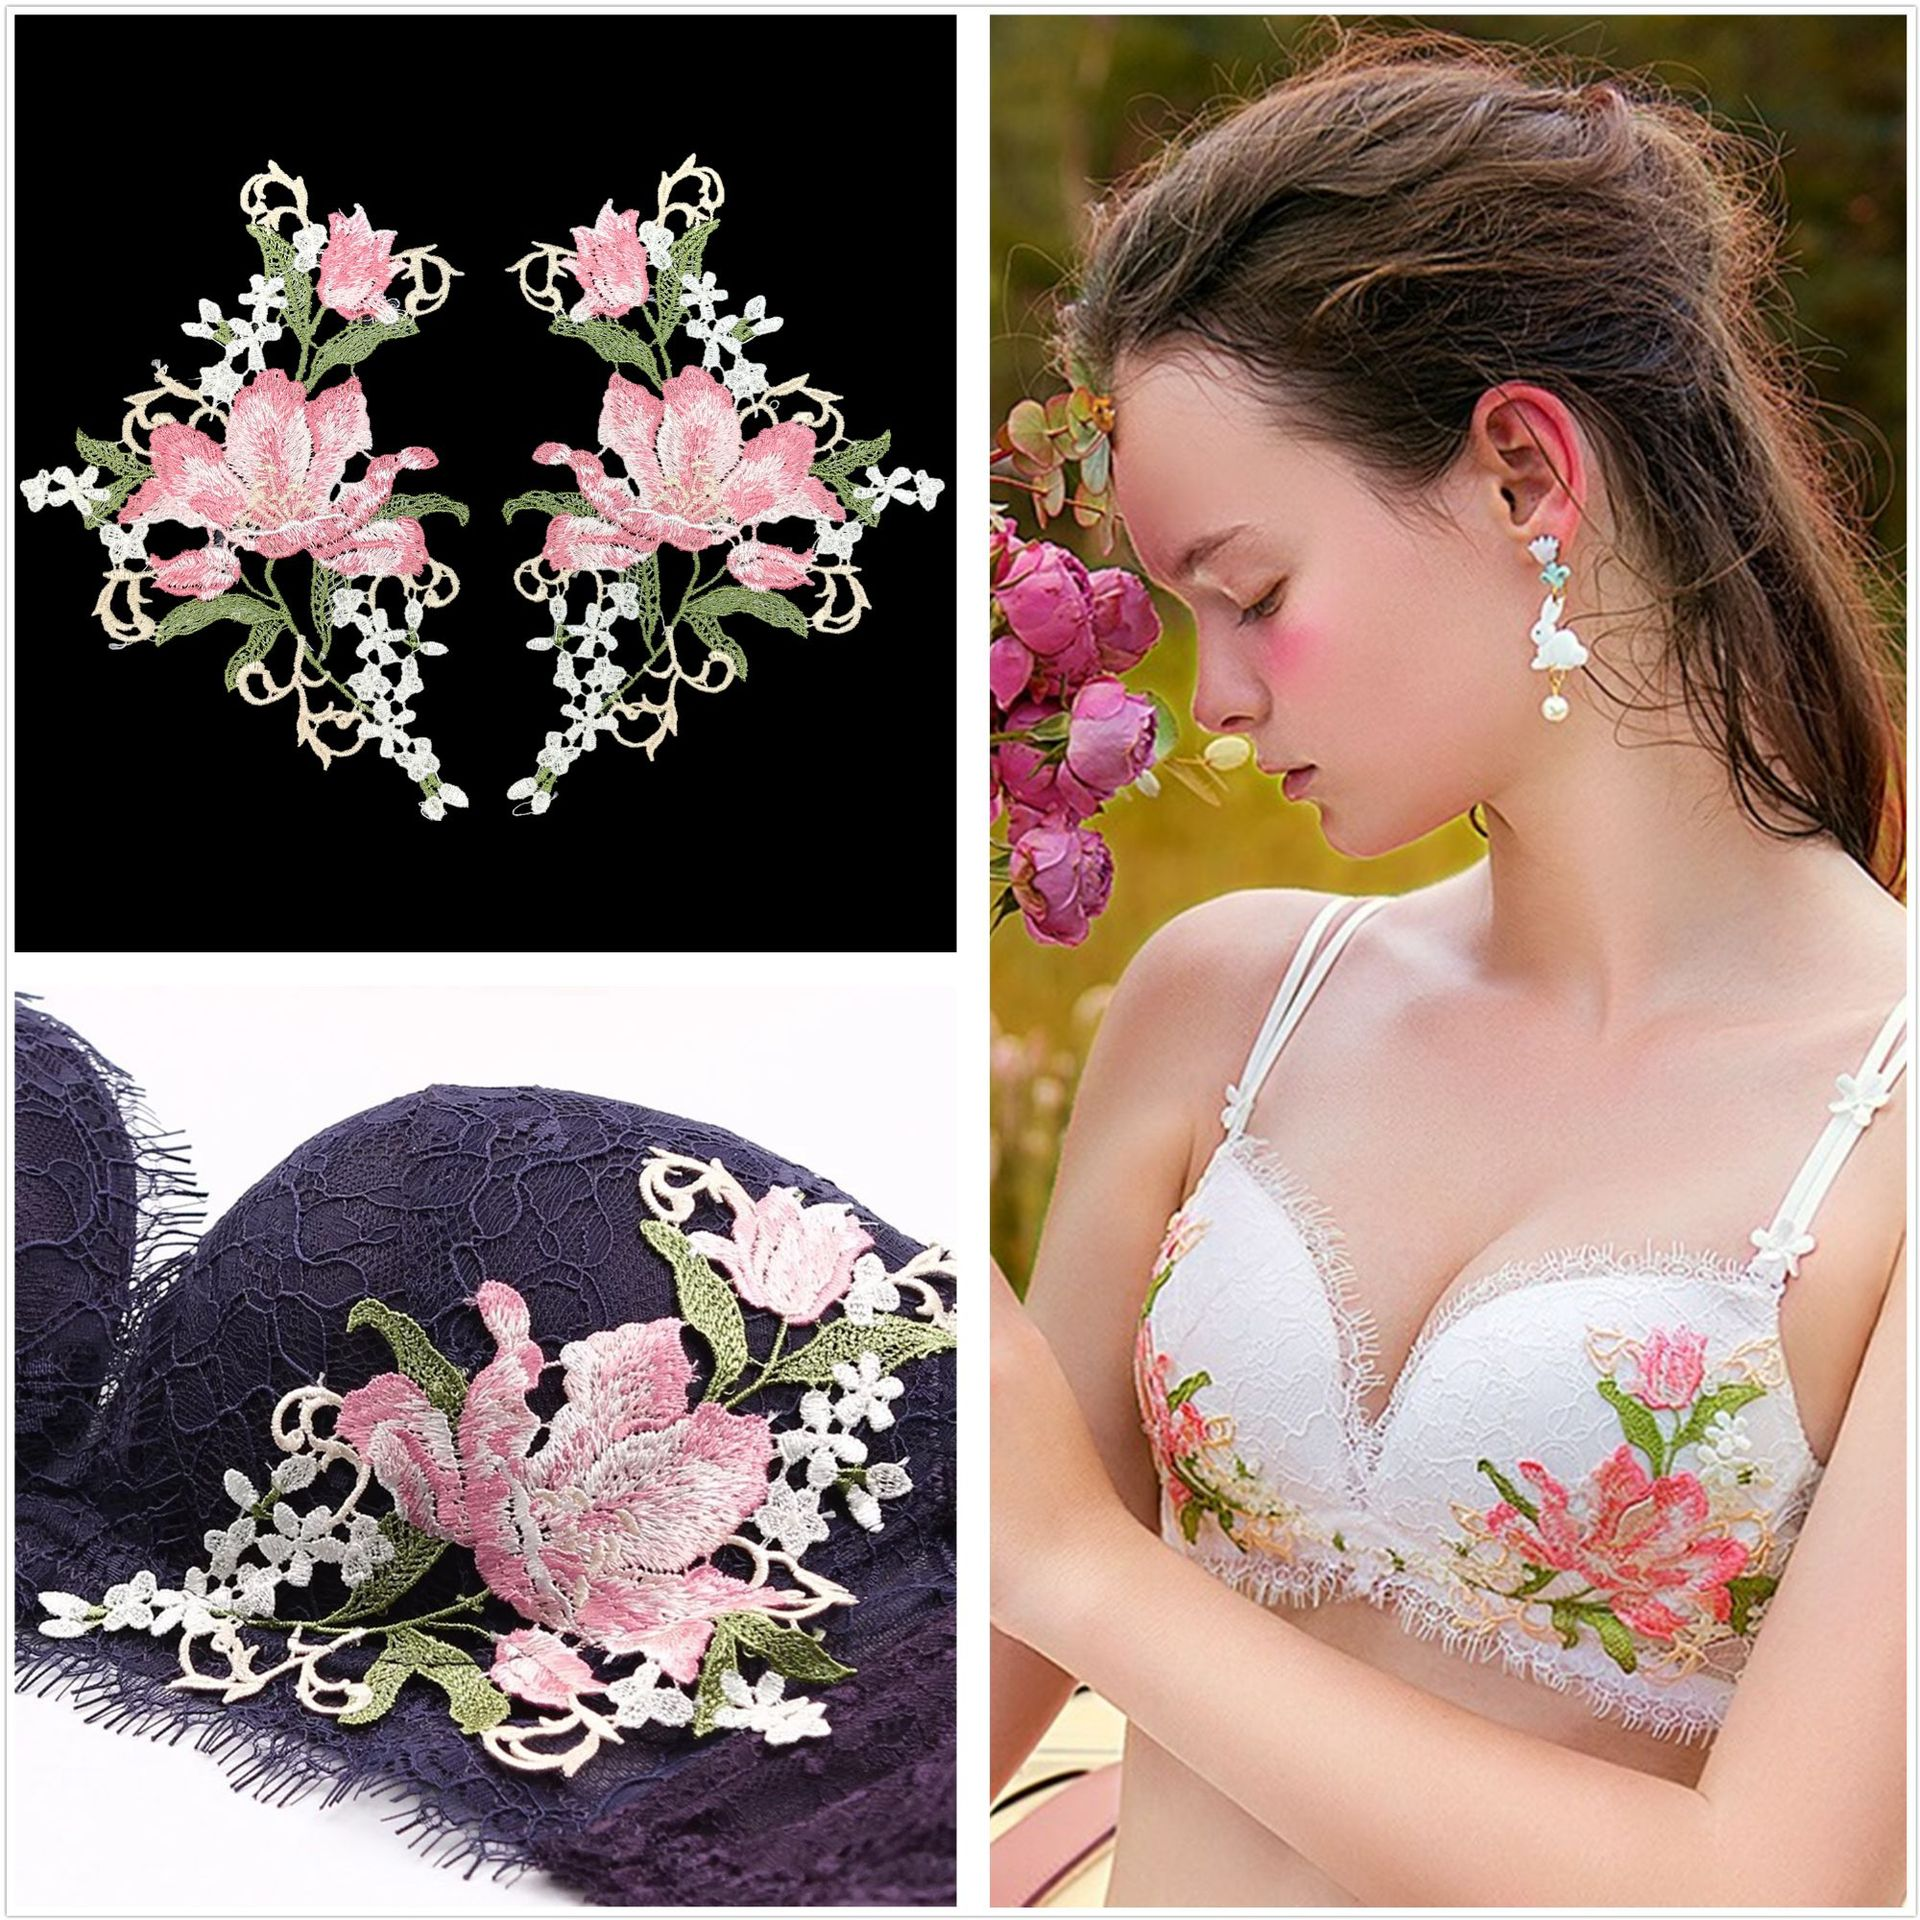 2019 New Fashion DIY Applique Embroidery Applique Costume Decoration Dimensional Bra Patch Water-soluble